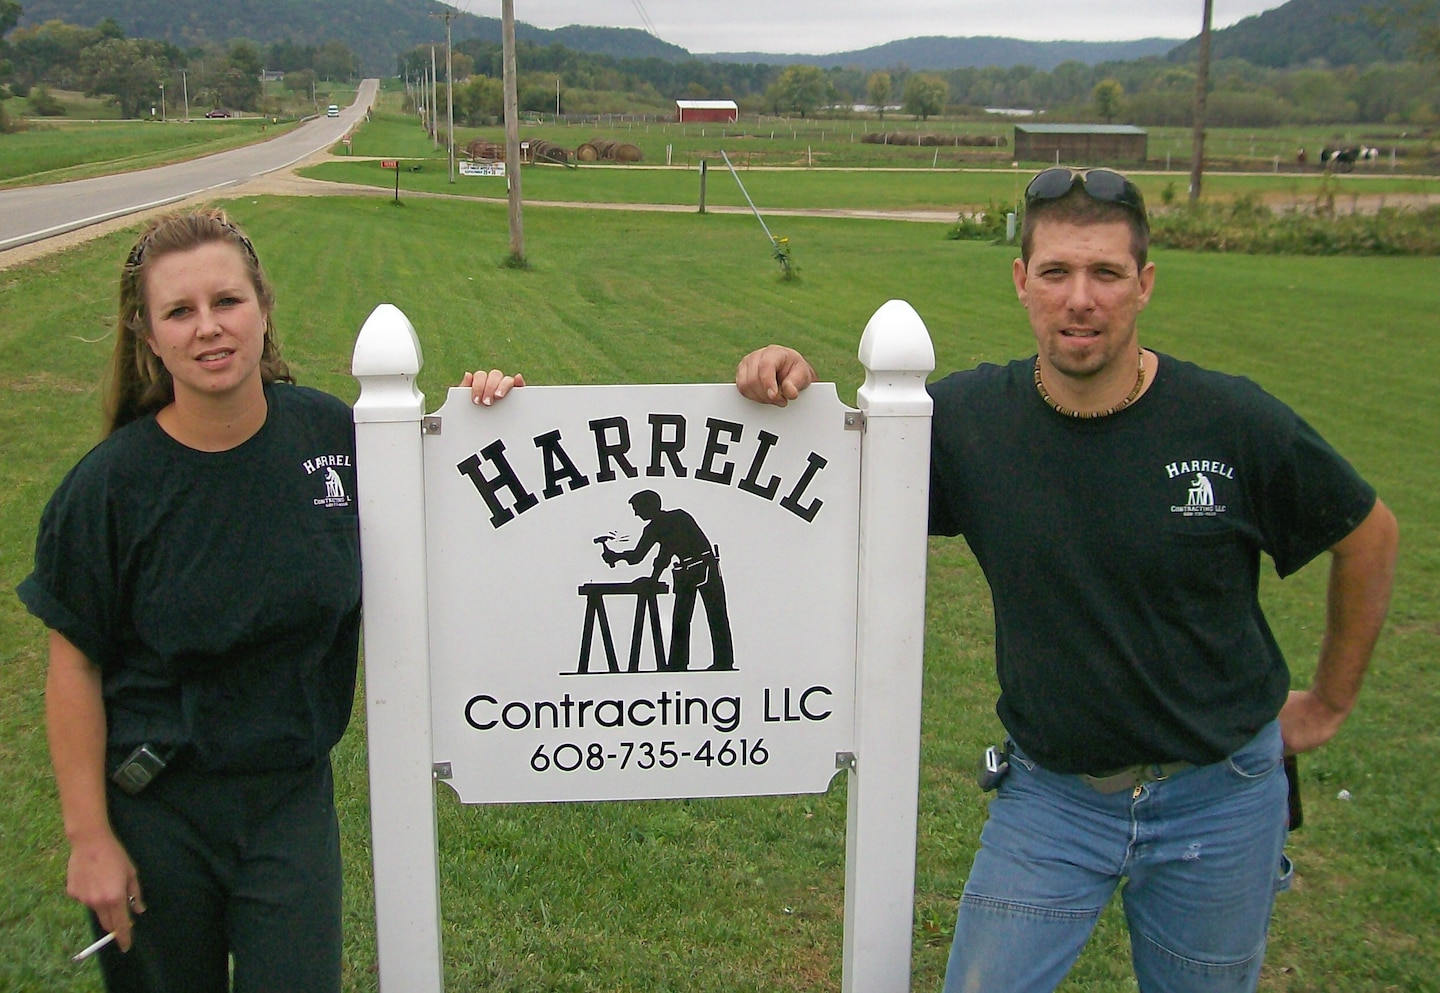 HARRELL CONTRACTING